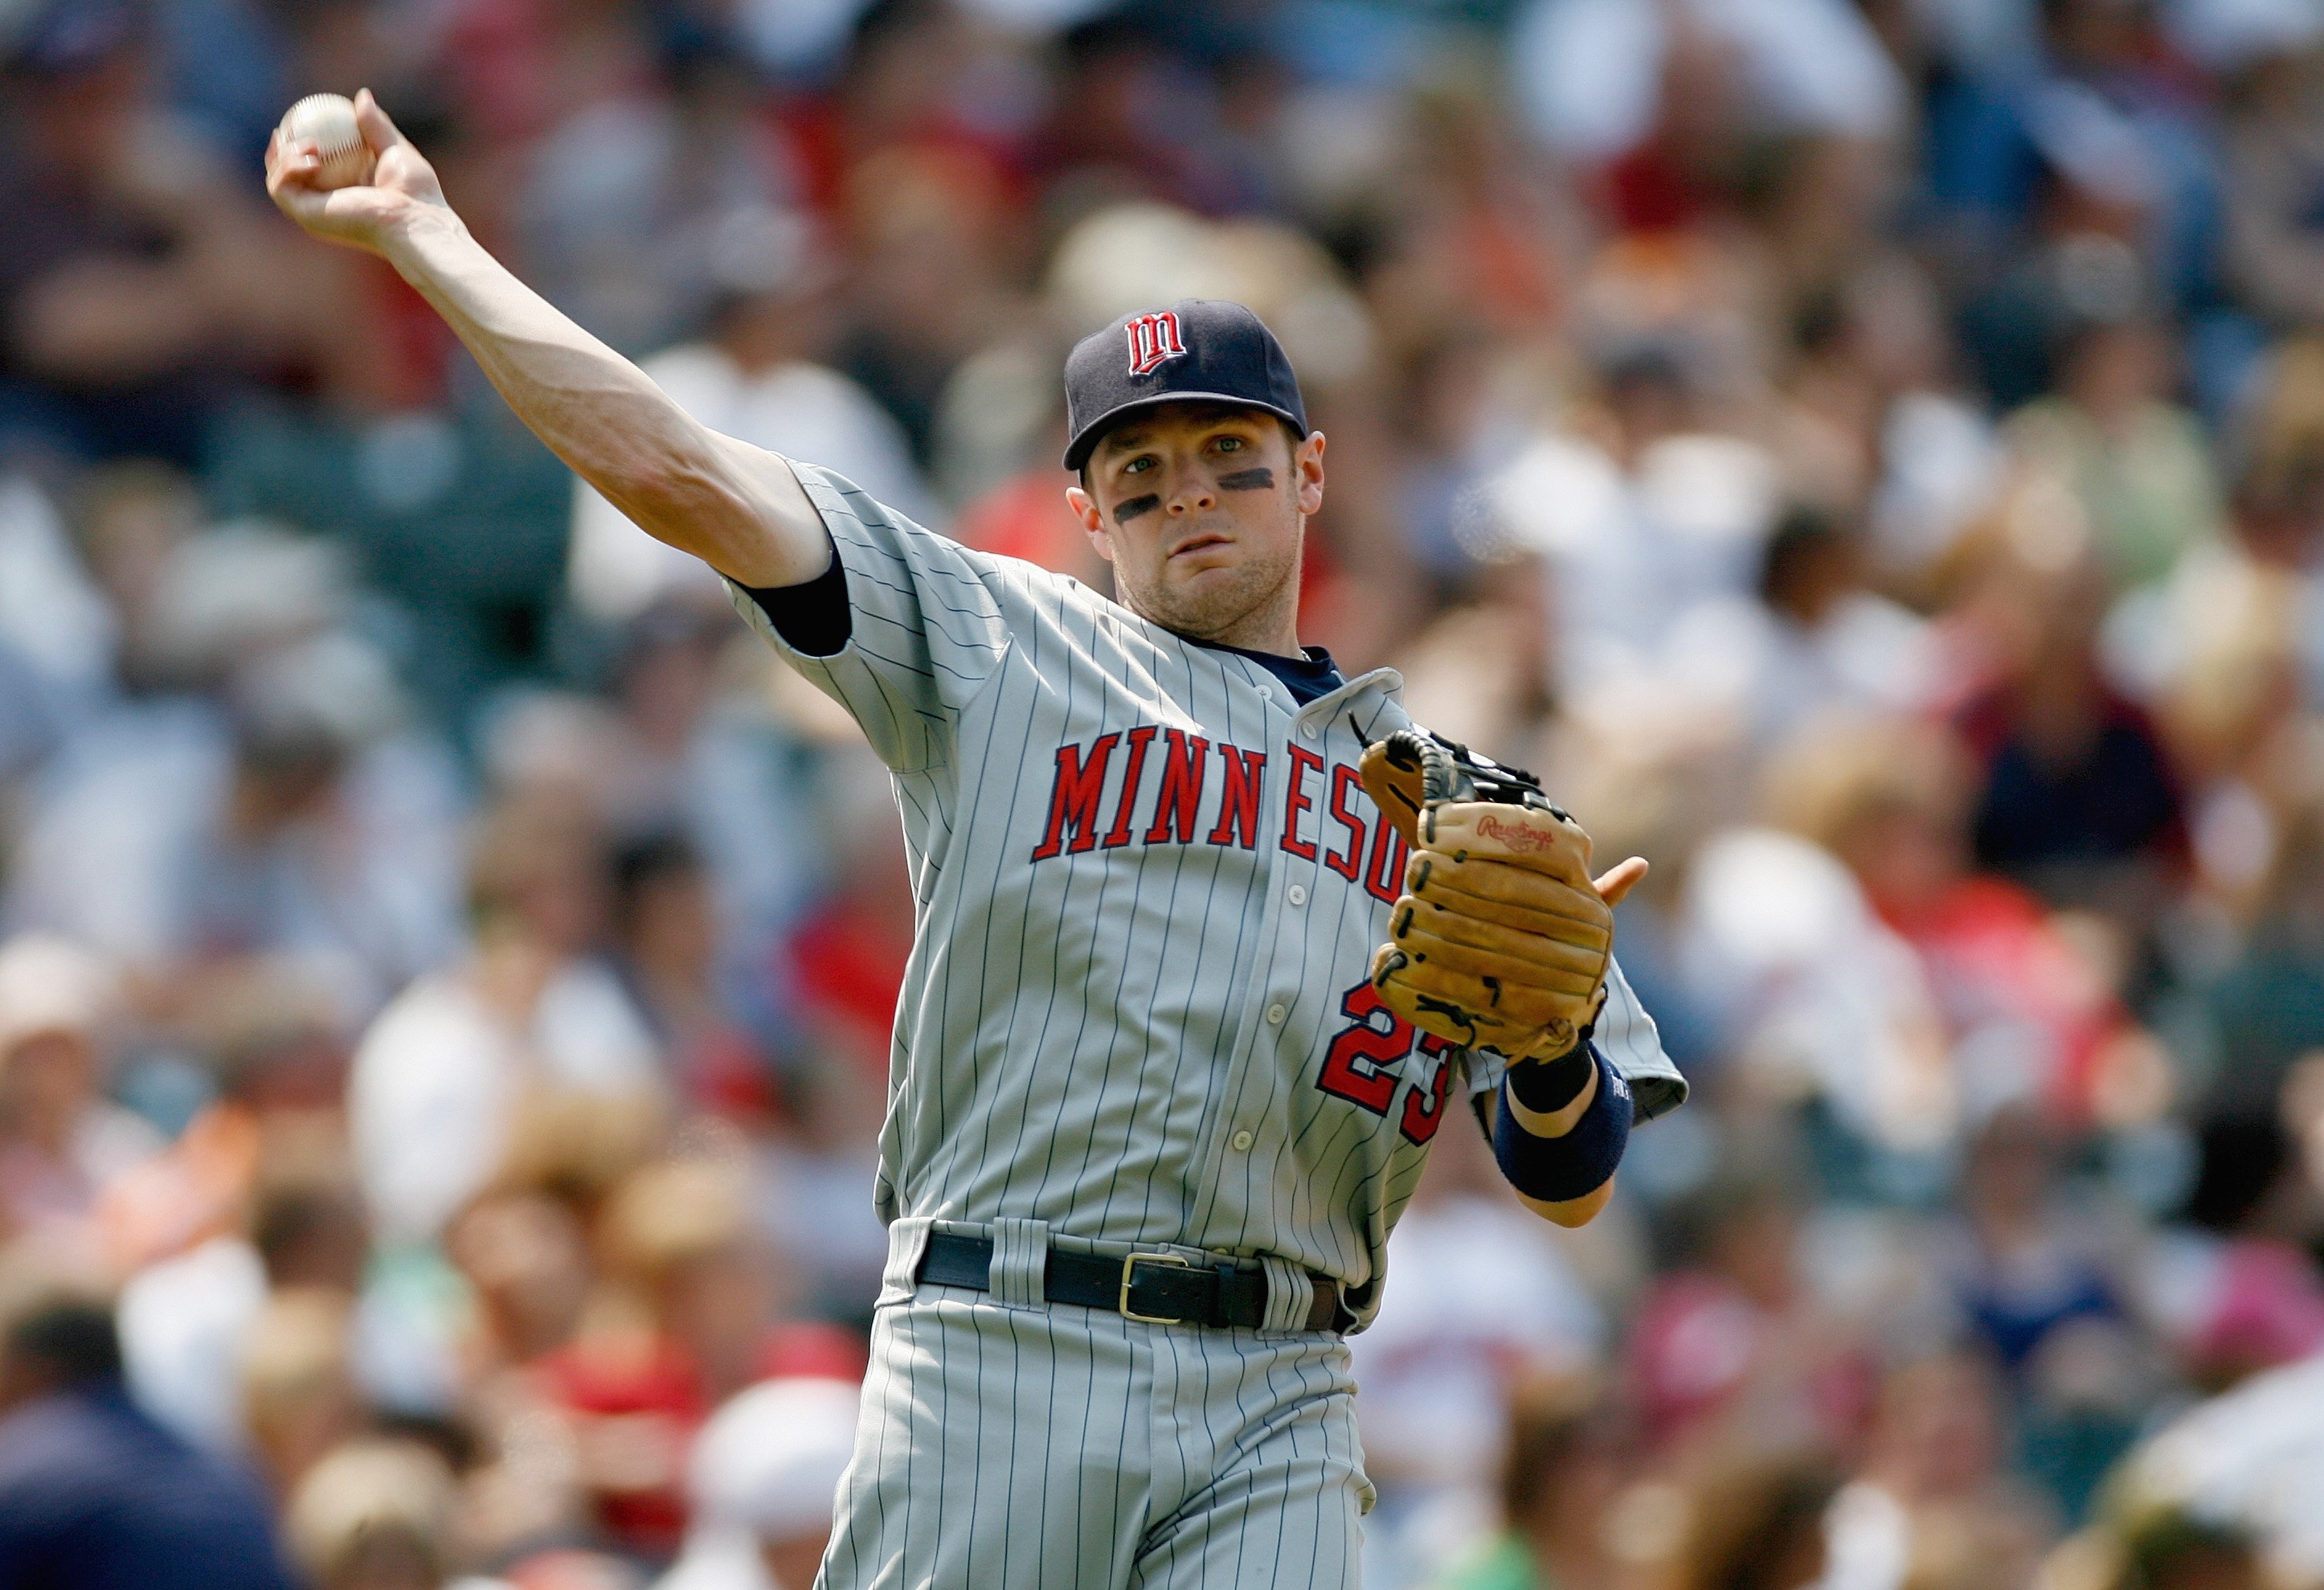 CLEVELAND - JULY 27:  Brendan Harris #23 of the Minnesota Twins fields during the game against the Cleveland Indians at Progressive Field on July 27, 2008 in Cleveland, Ohio.  (Photo by:  Gregory Shamus/Getty Images)